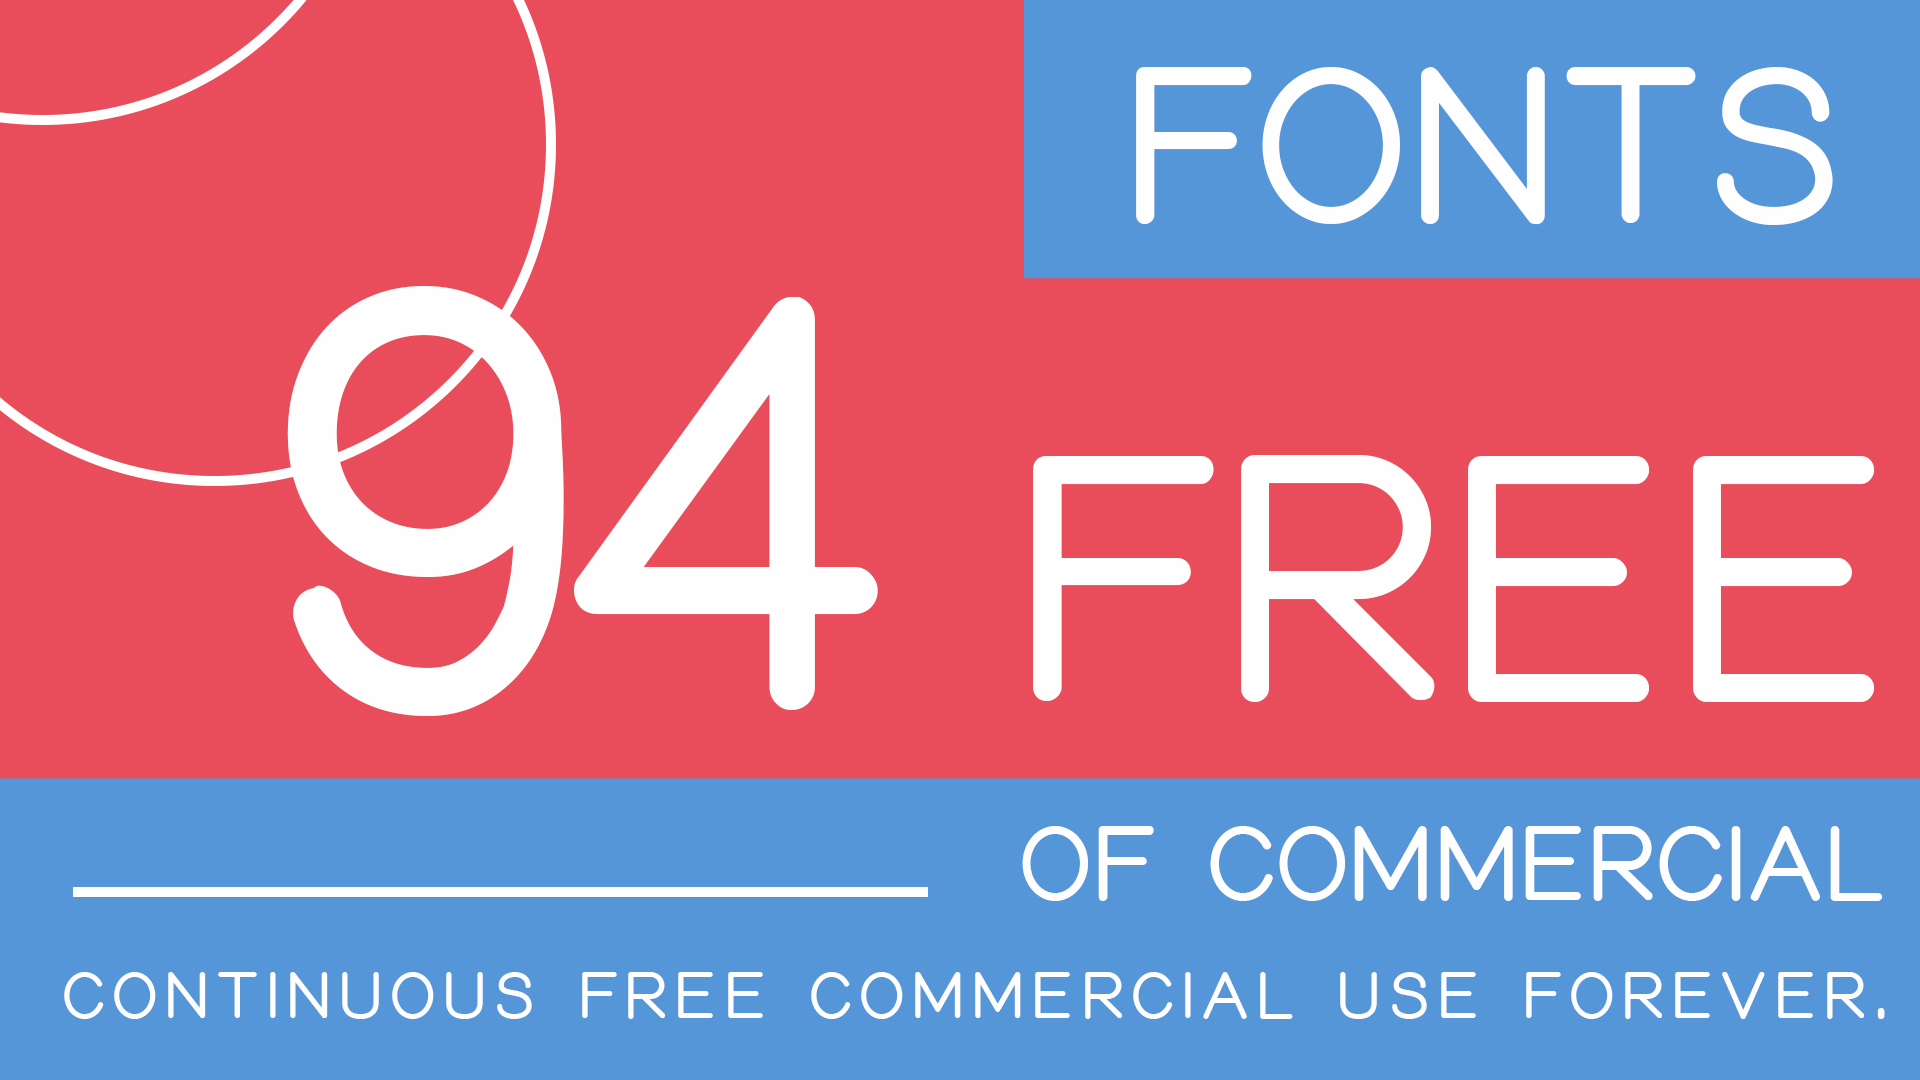 A GUA Standard rounded font-Free commercial use forever! English font download